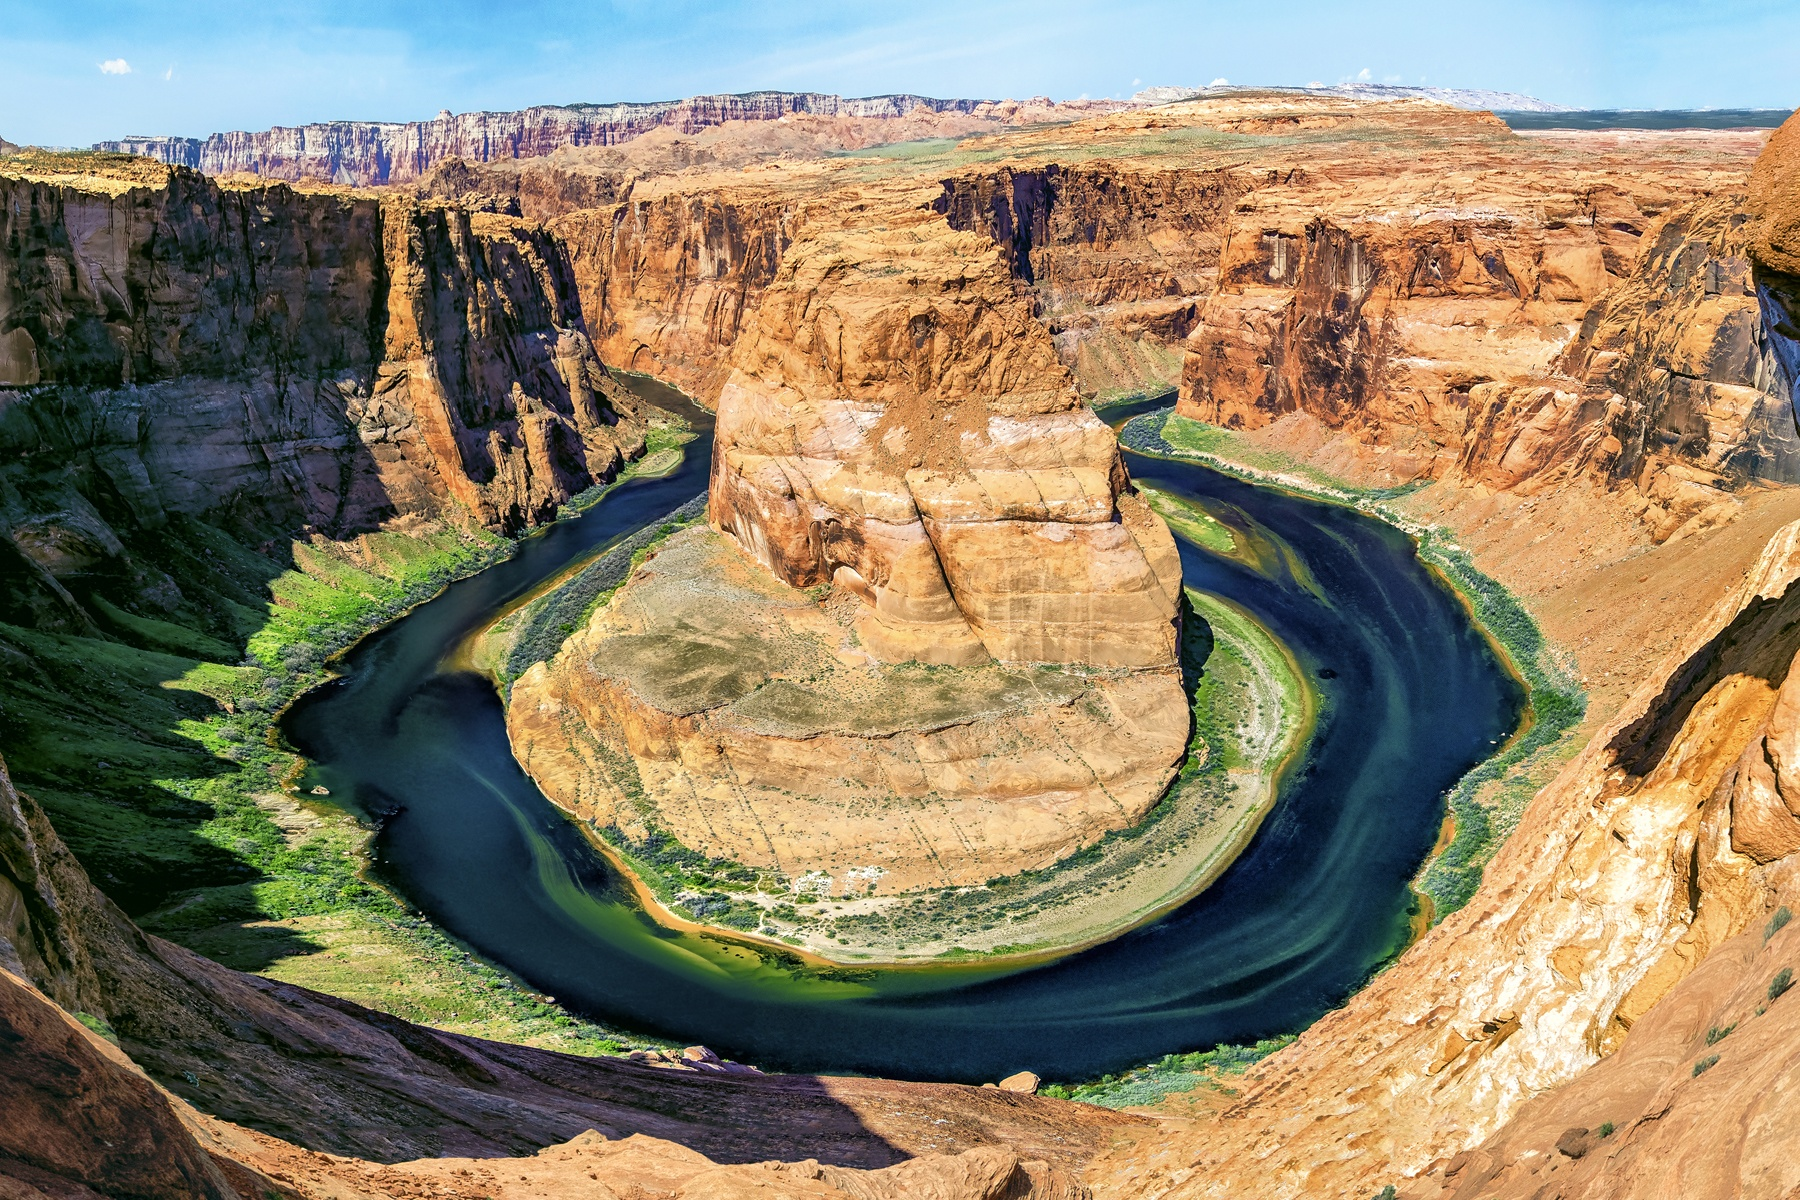 HORSESHOE BEND - Just outside Page, Arizona is this incredible view from the steep cliff that overlooks the Colorado River some 1,100 feet below.